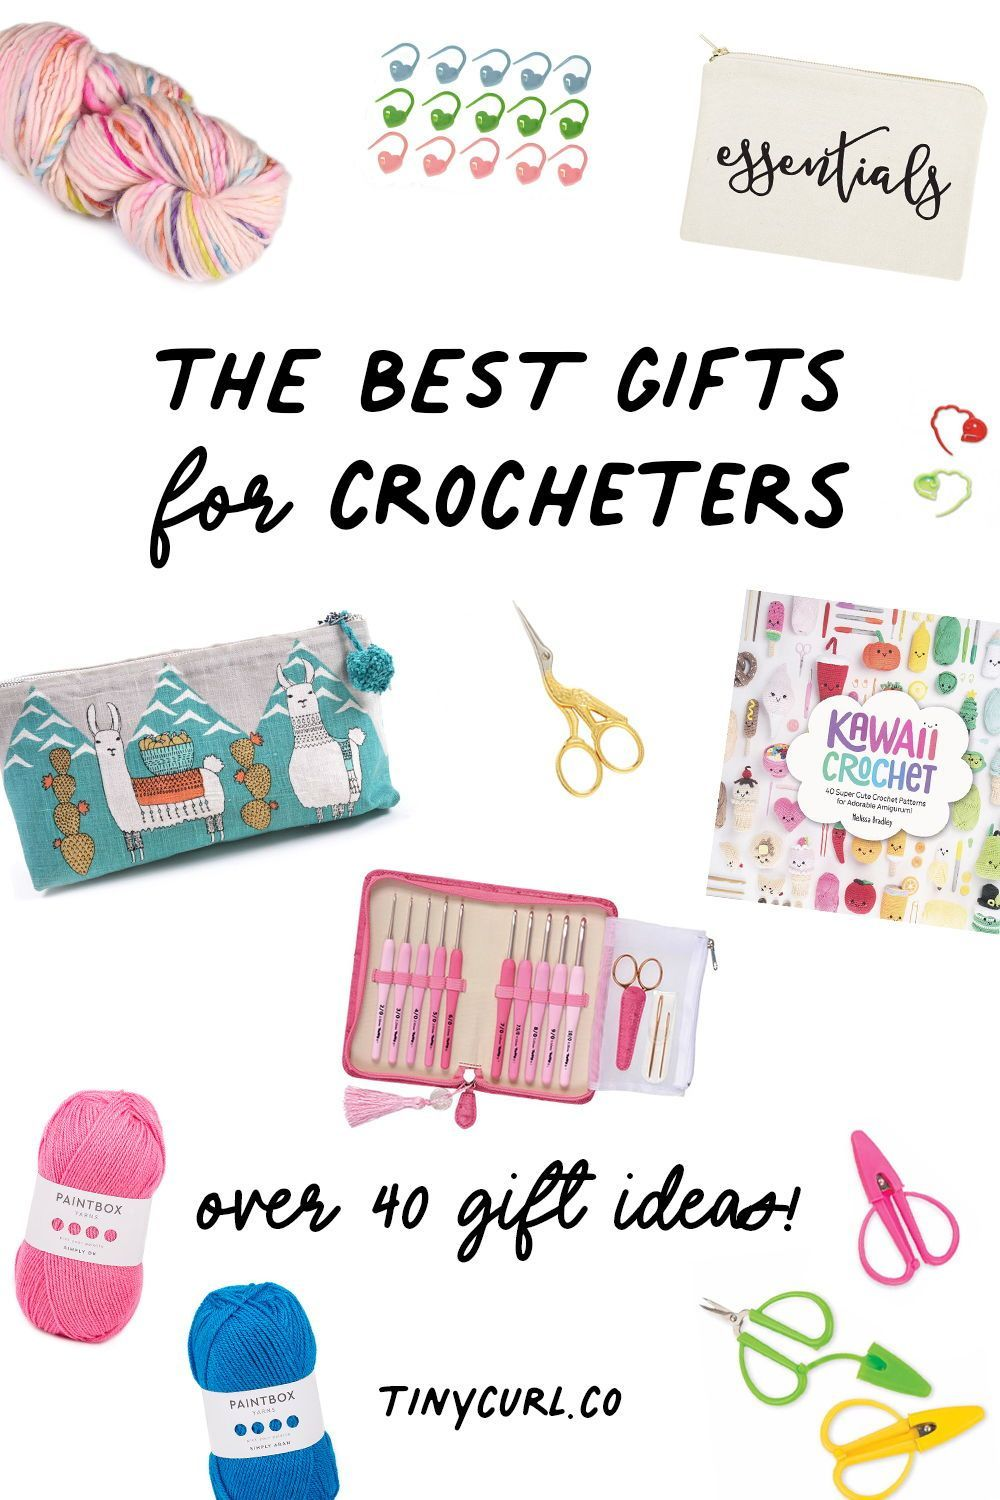 The Best Gifts For Crocheters Tiny Curl Crochet Kawaii Crochet Crochet Lovers Modern Crochet Patterns